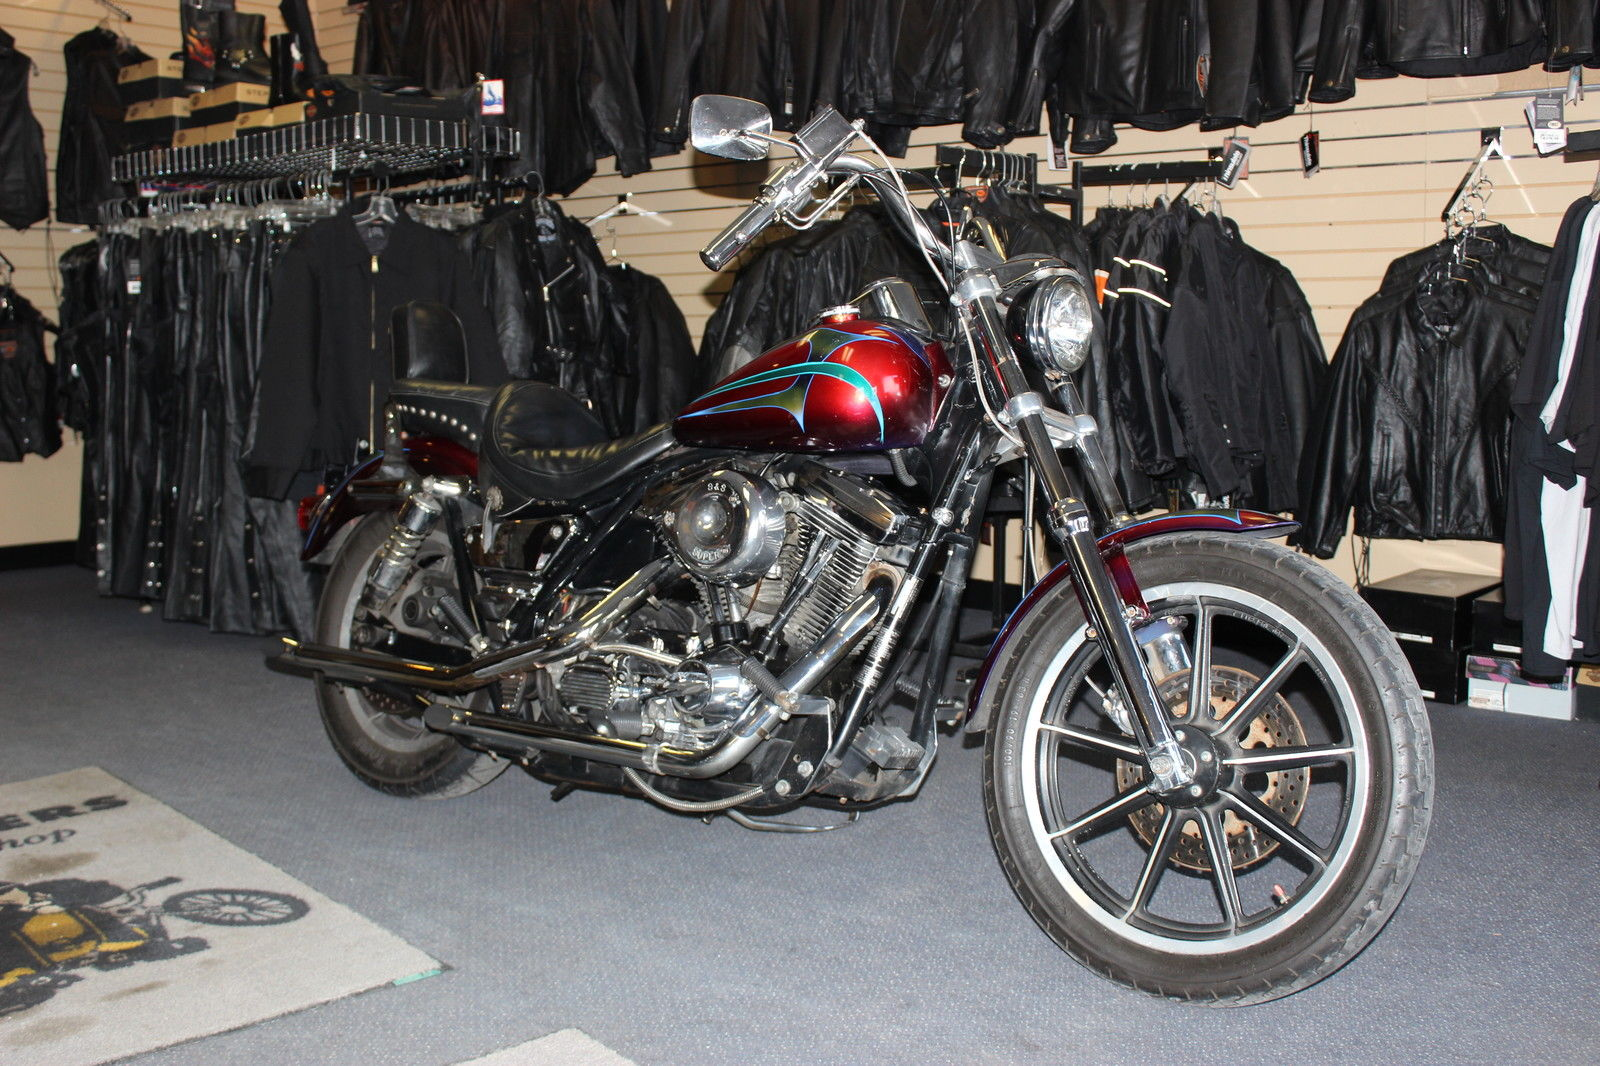 1990 Harley Davidson FXR Ron Finch Custom Paint Chopper Bobber